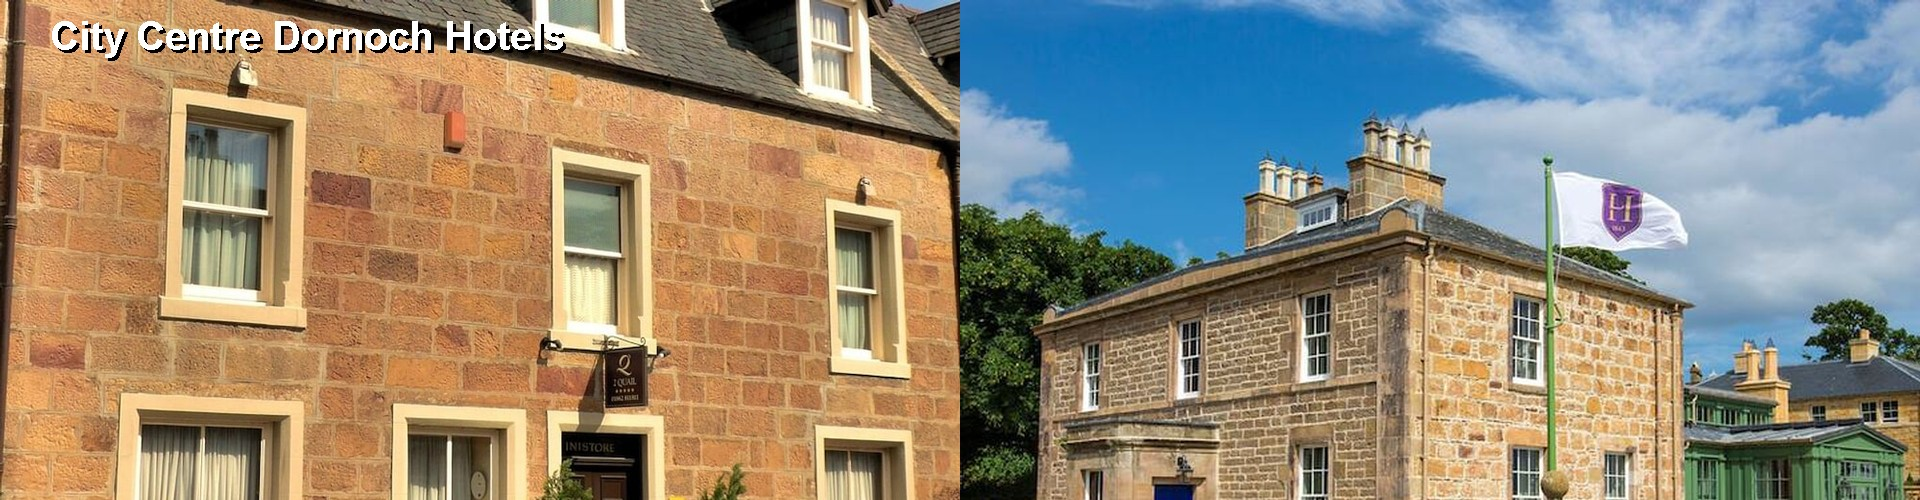 5 Best Hotels near City Centre Dornoch